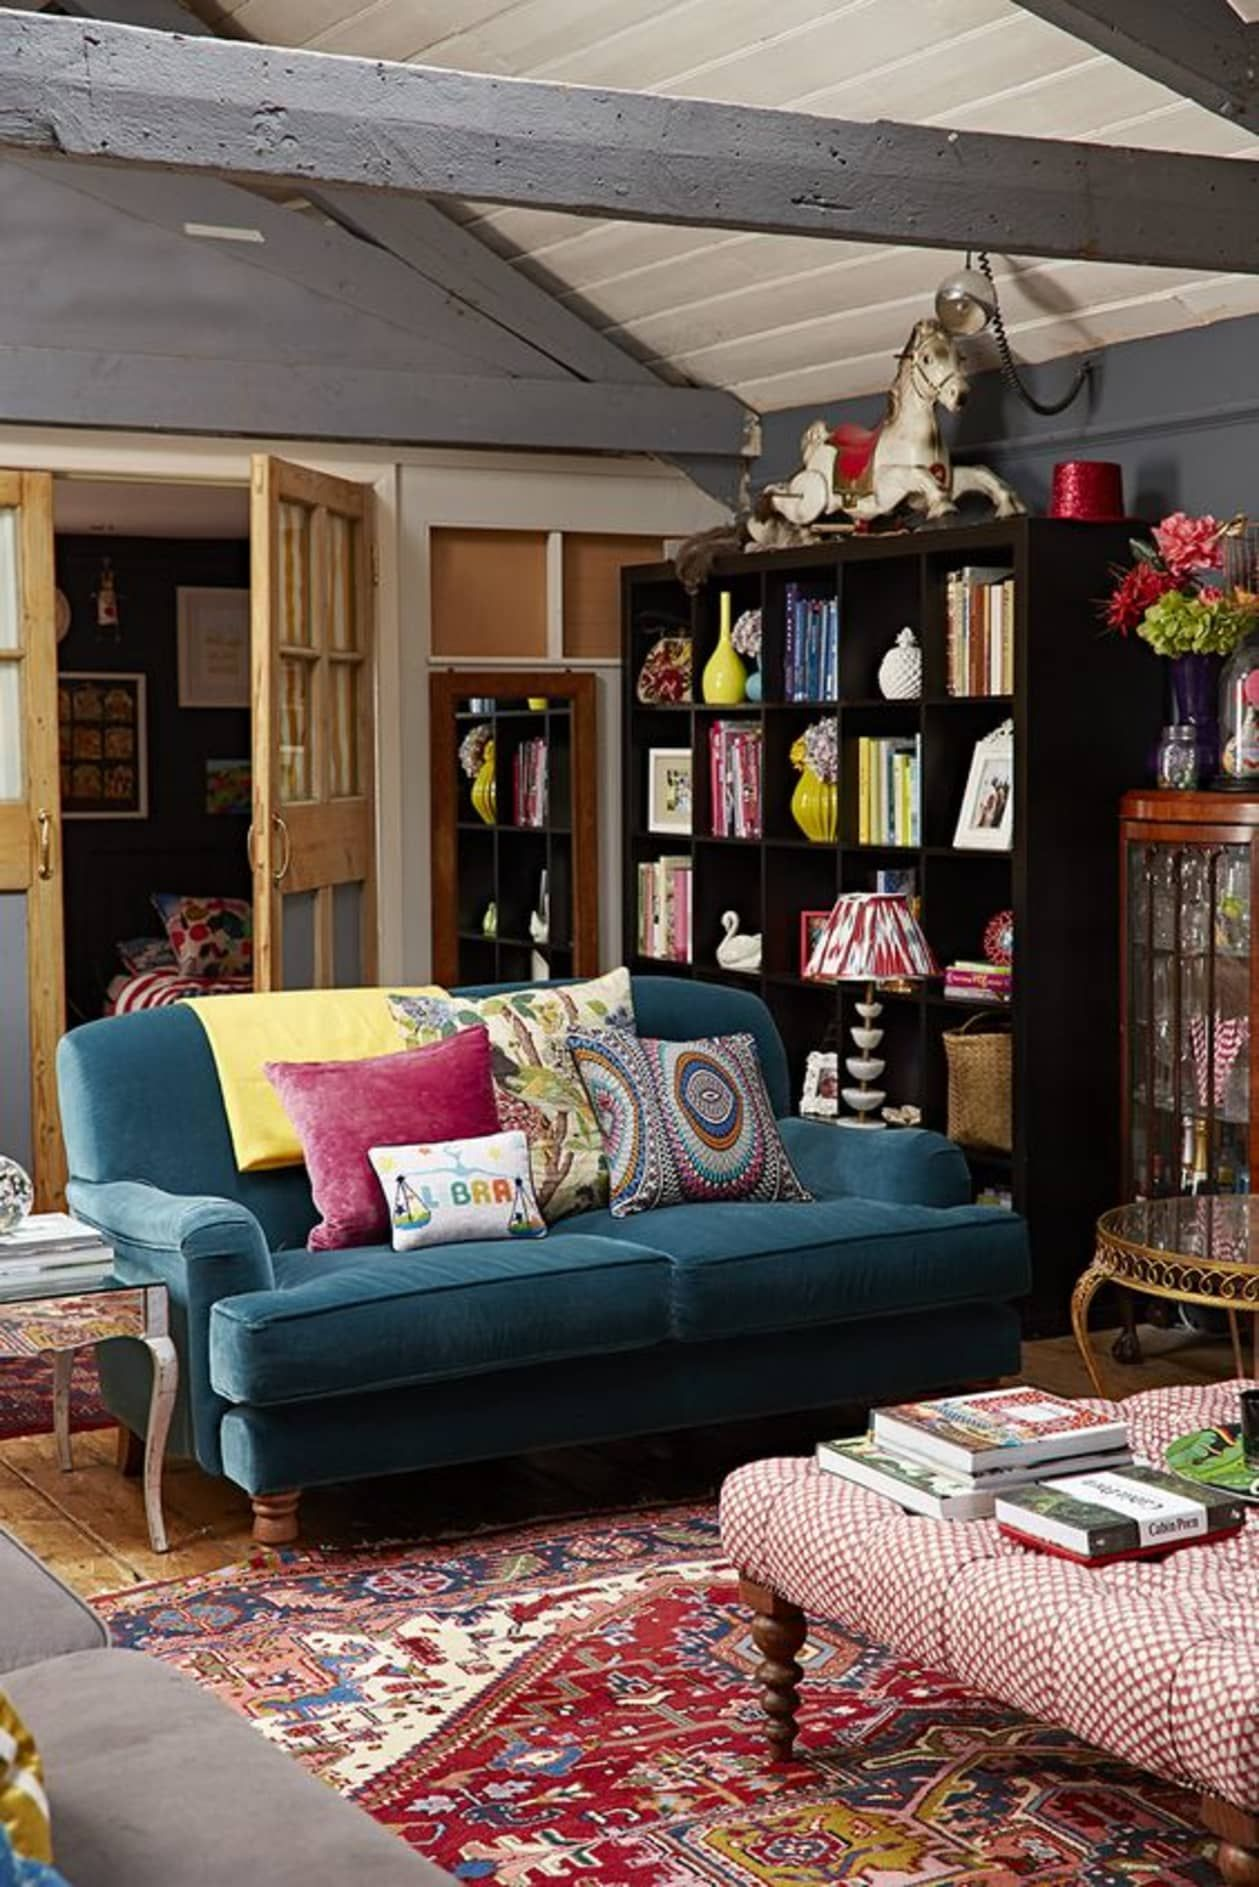 Is Red And Blue The New Design Power Couple Living Room Decor Eclectic Modern Eclectic Living Room Eclectic Living Room